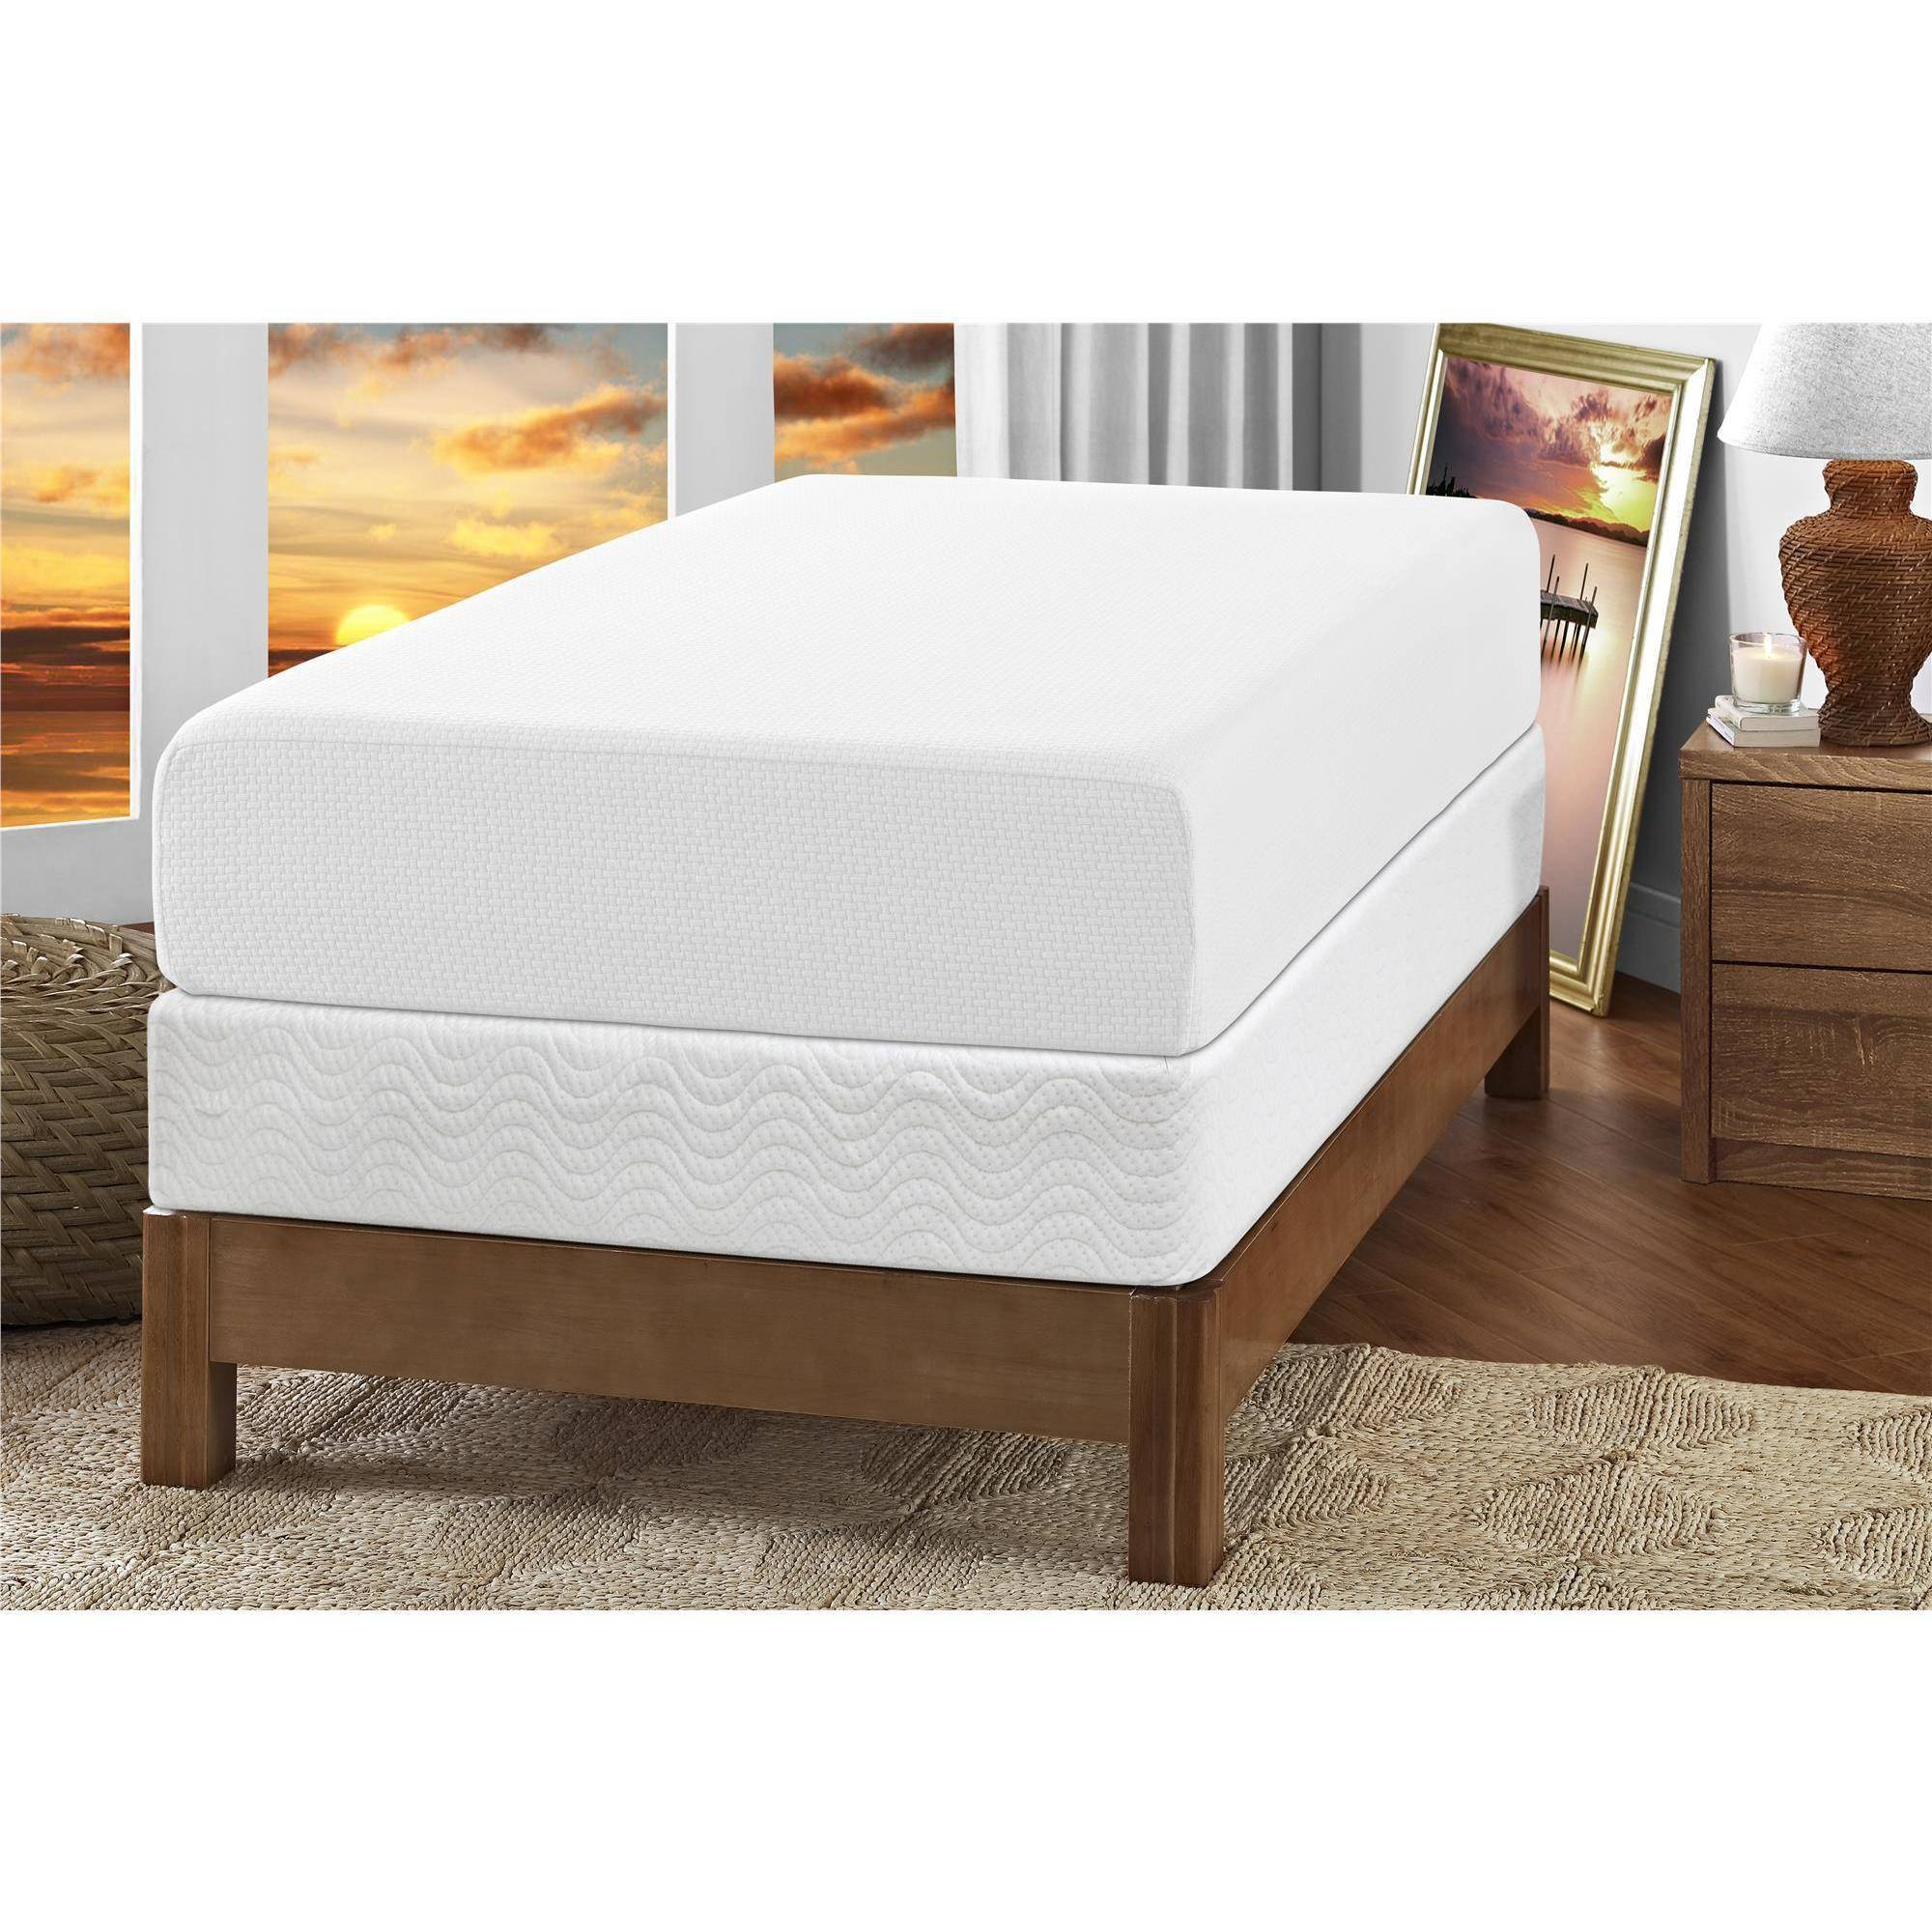 Signature Sleep Gold Inspire 10 Memory Foam Mattress With Certipur